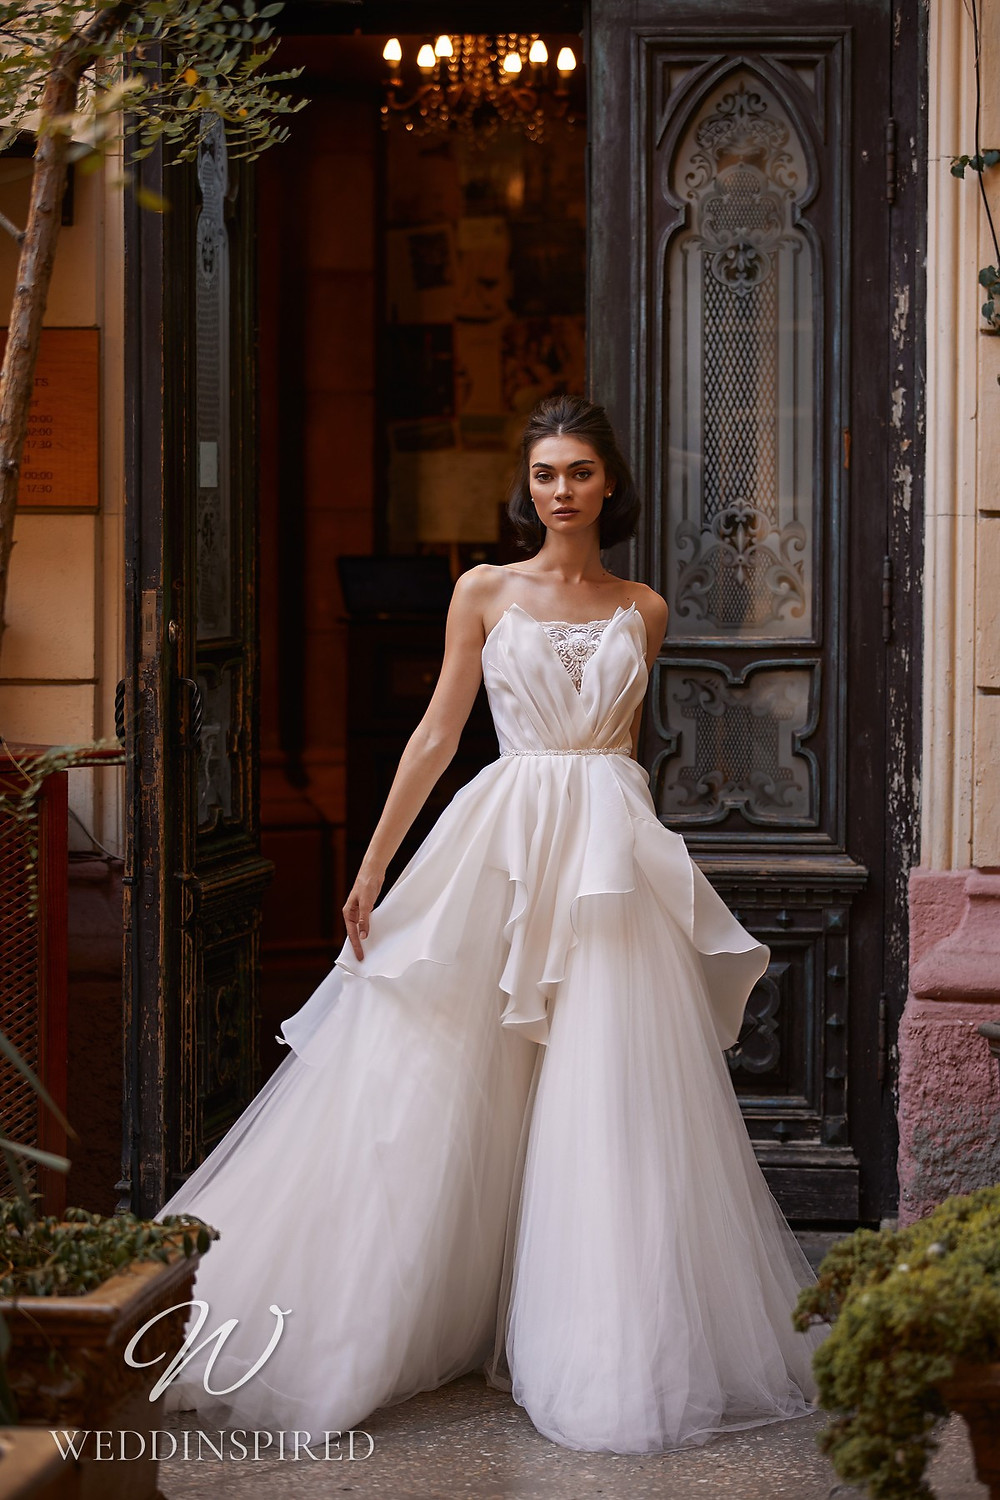 A Daria Karlozi 2021 strapless tulle and satin A-line wedding dress